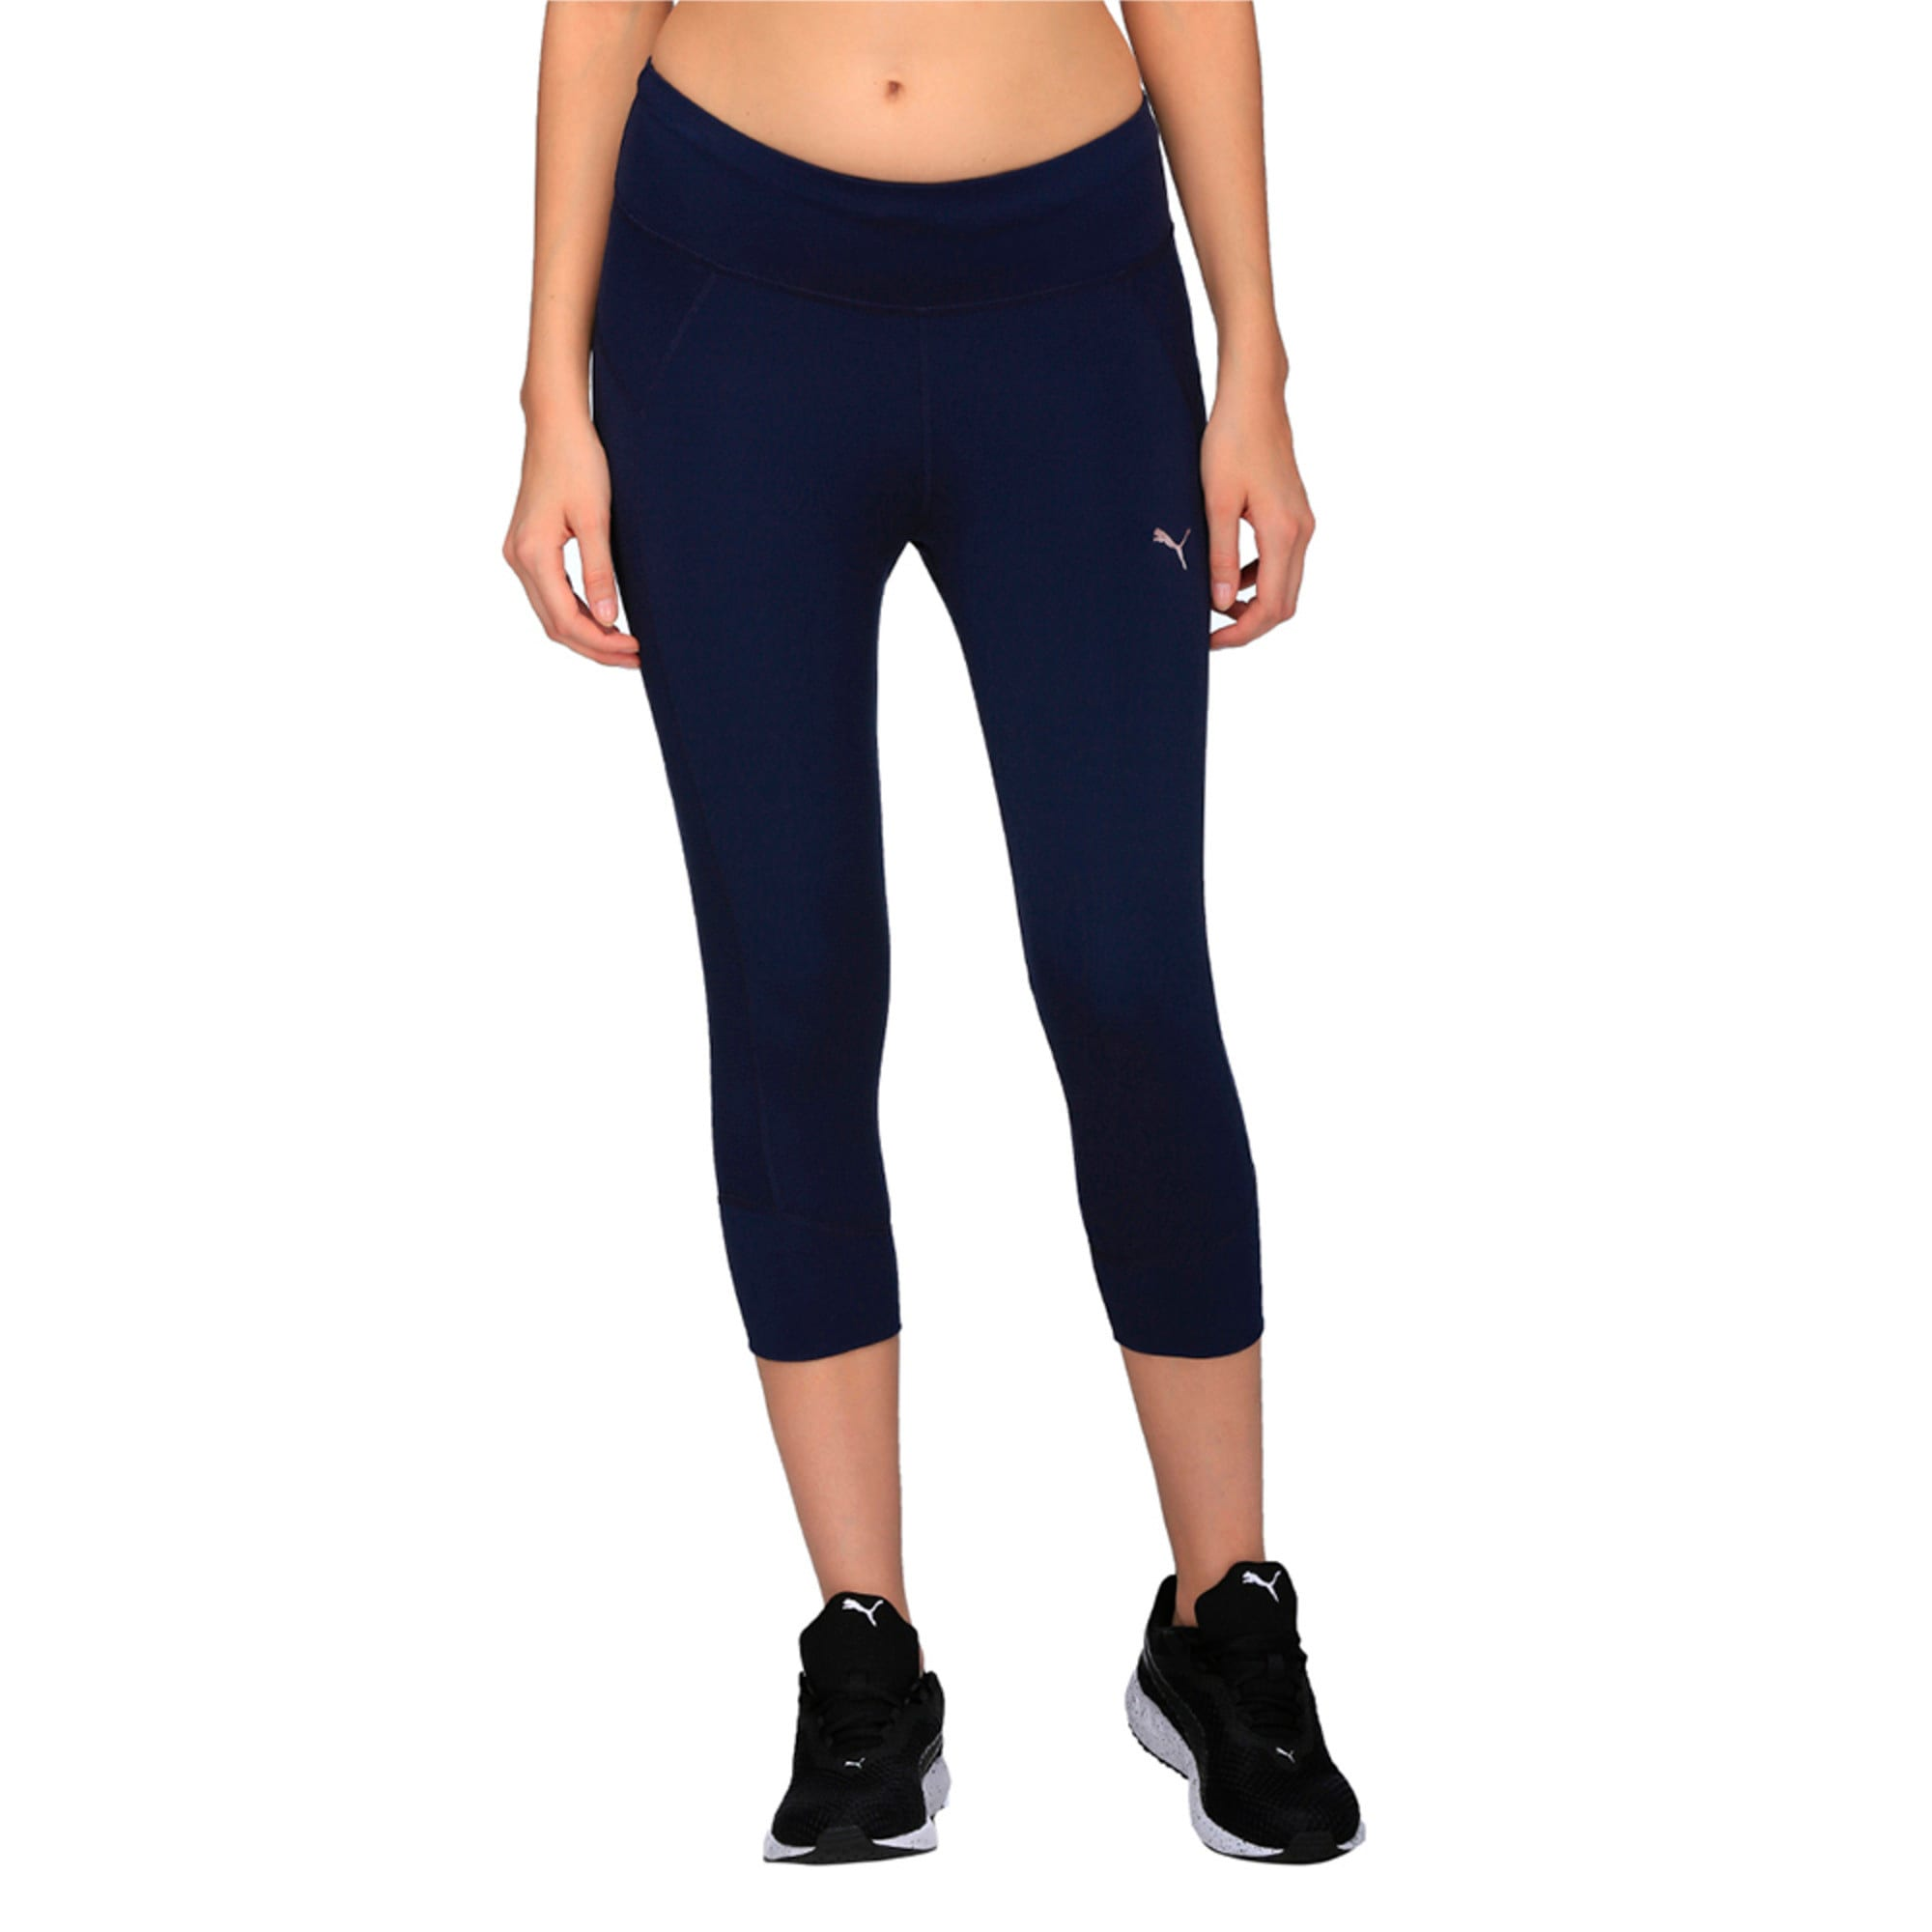 Thumbnail 2 of Running Women's PWRCOOL Speed 3/4 Tights, Peacoat, medium-IND